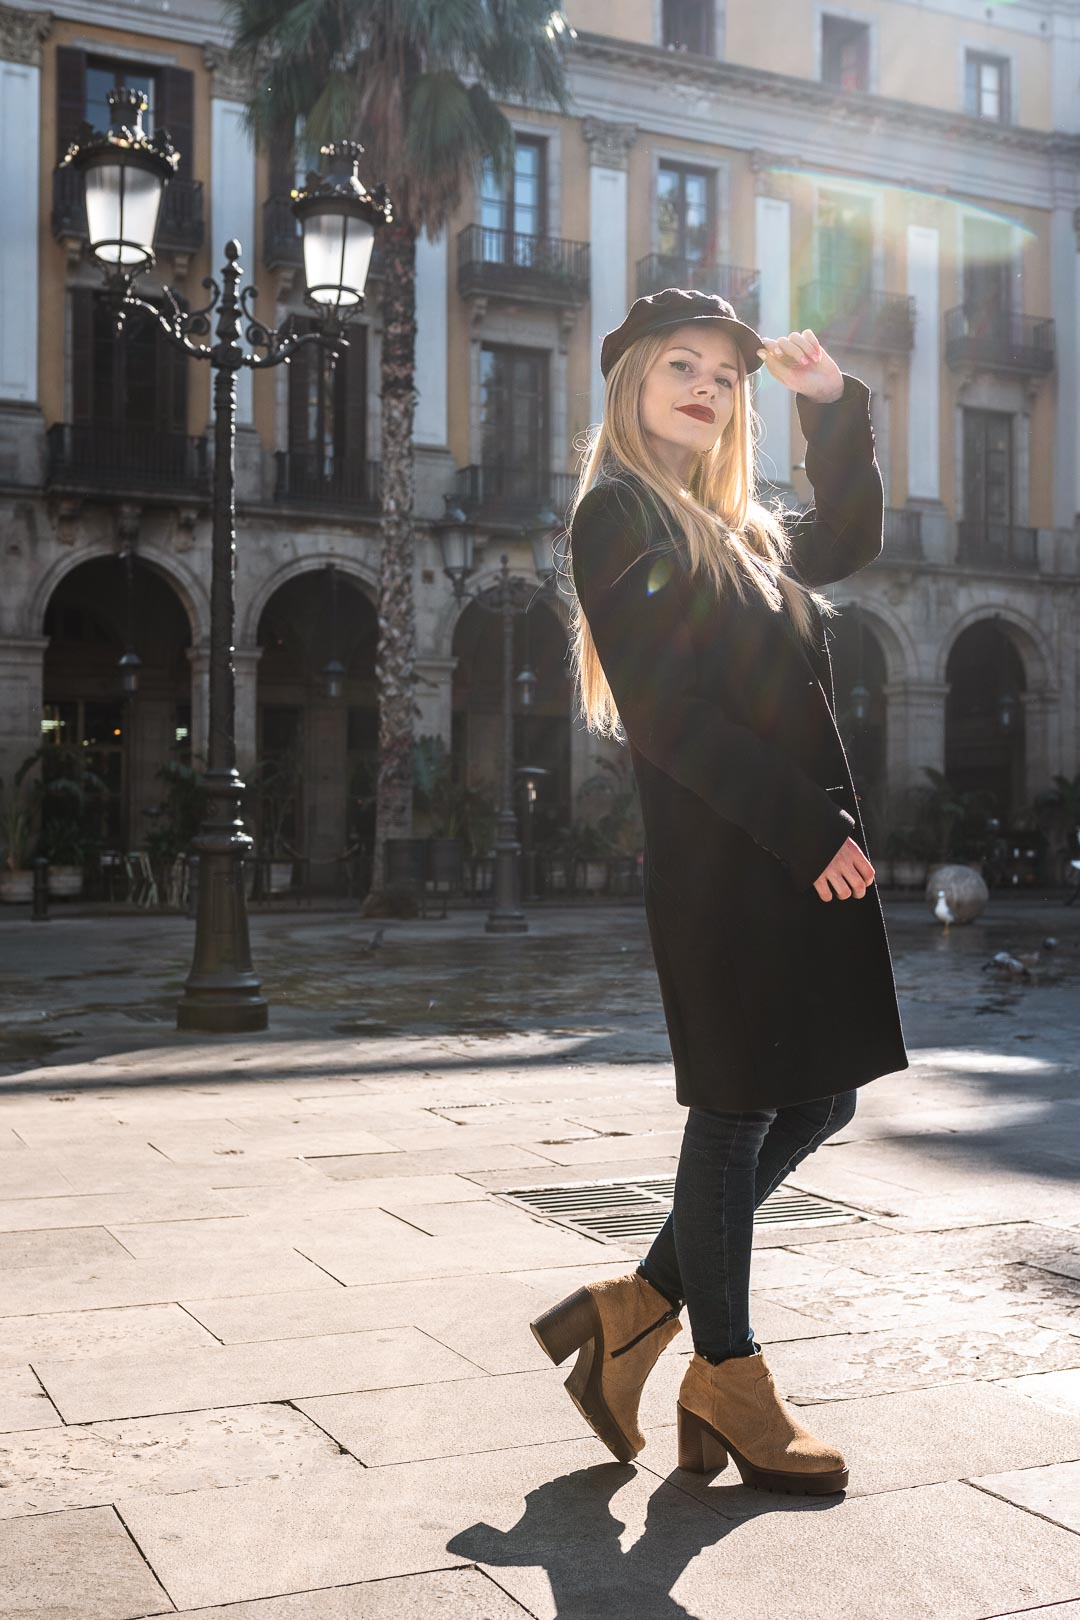 Blond woman in black clothes lit by a ray of sunshine